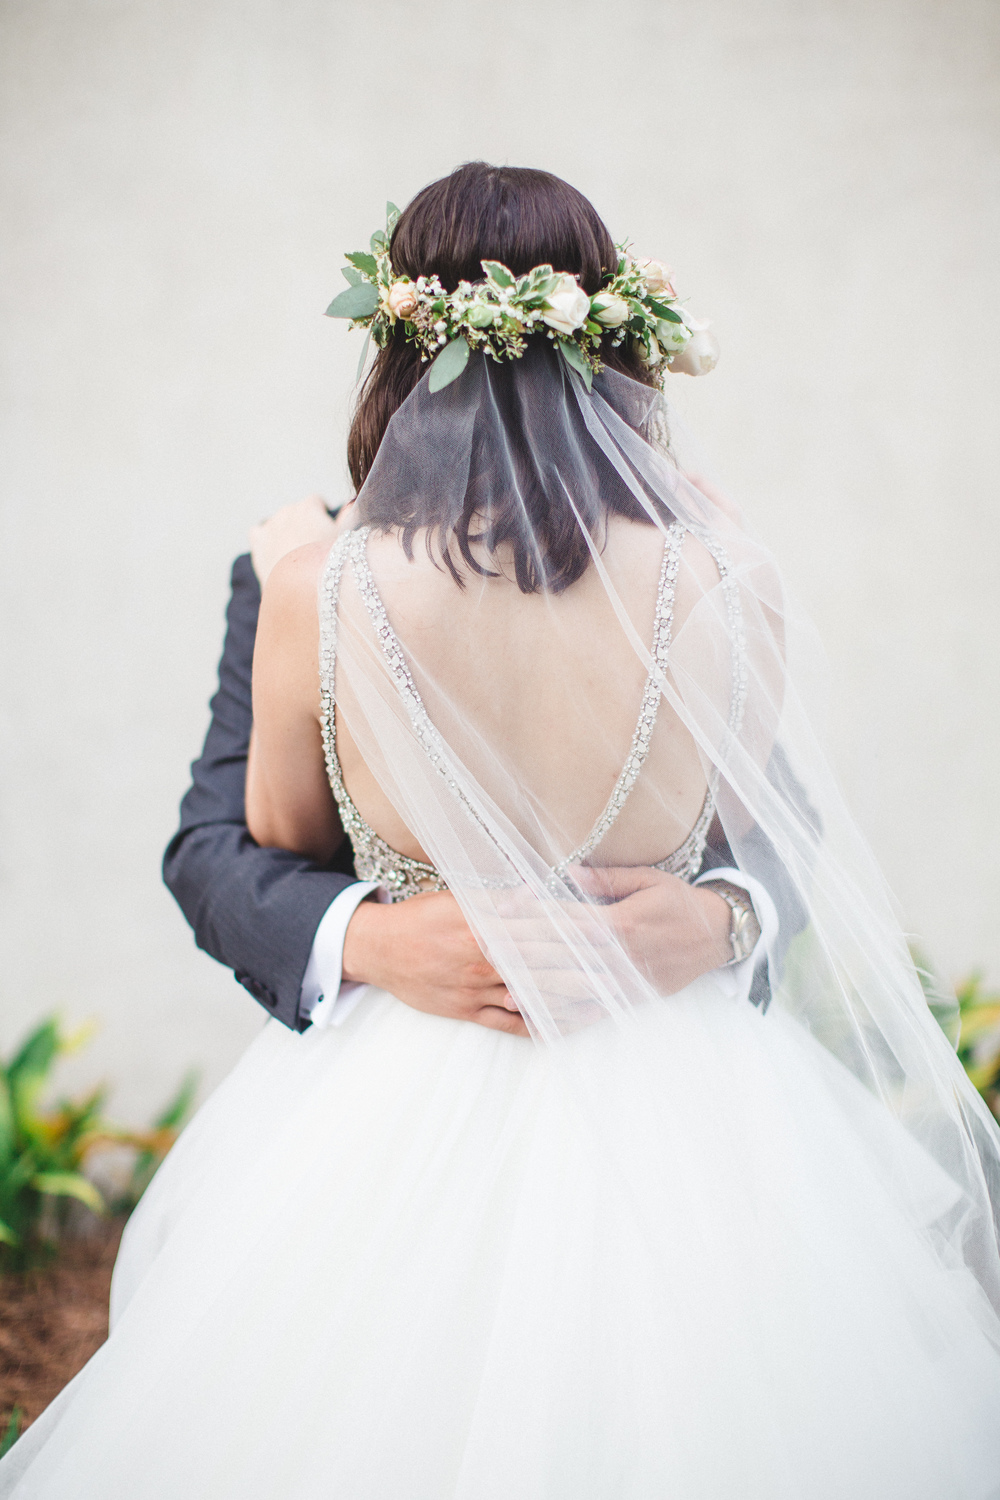 veil-with-flower-crown-ivory-and-beau-bridal-boutique-savannah-wedding-dresses-savannah-bridal-gown-savannah-weddings-savannah-wedding-planner-savannah-weddings-izzy-hudgins-photography.jpg